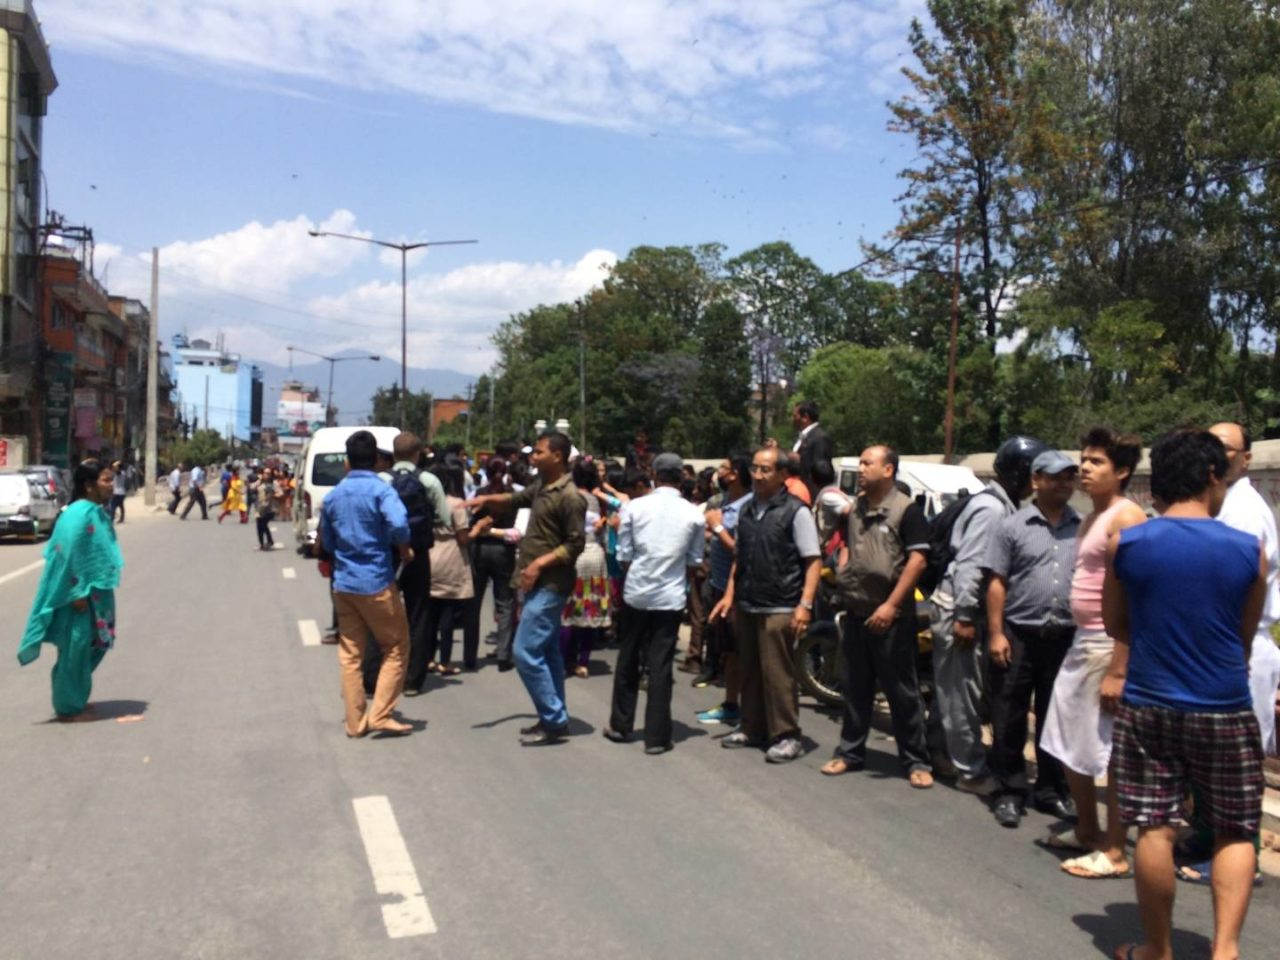 People ran into the streets, stalling traffic following the 7.4 magnitude quake that struck Nepal on Tuesday. PHOTO: World Vision / David Munoz